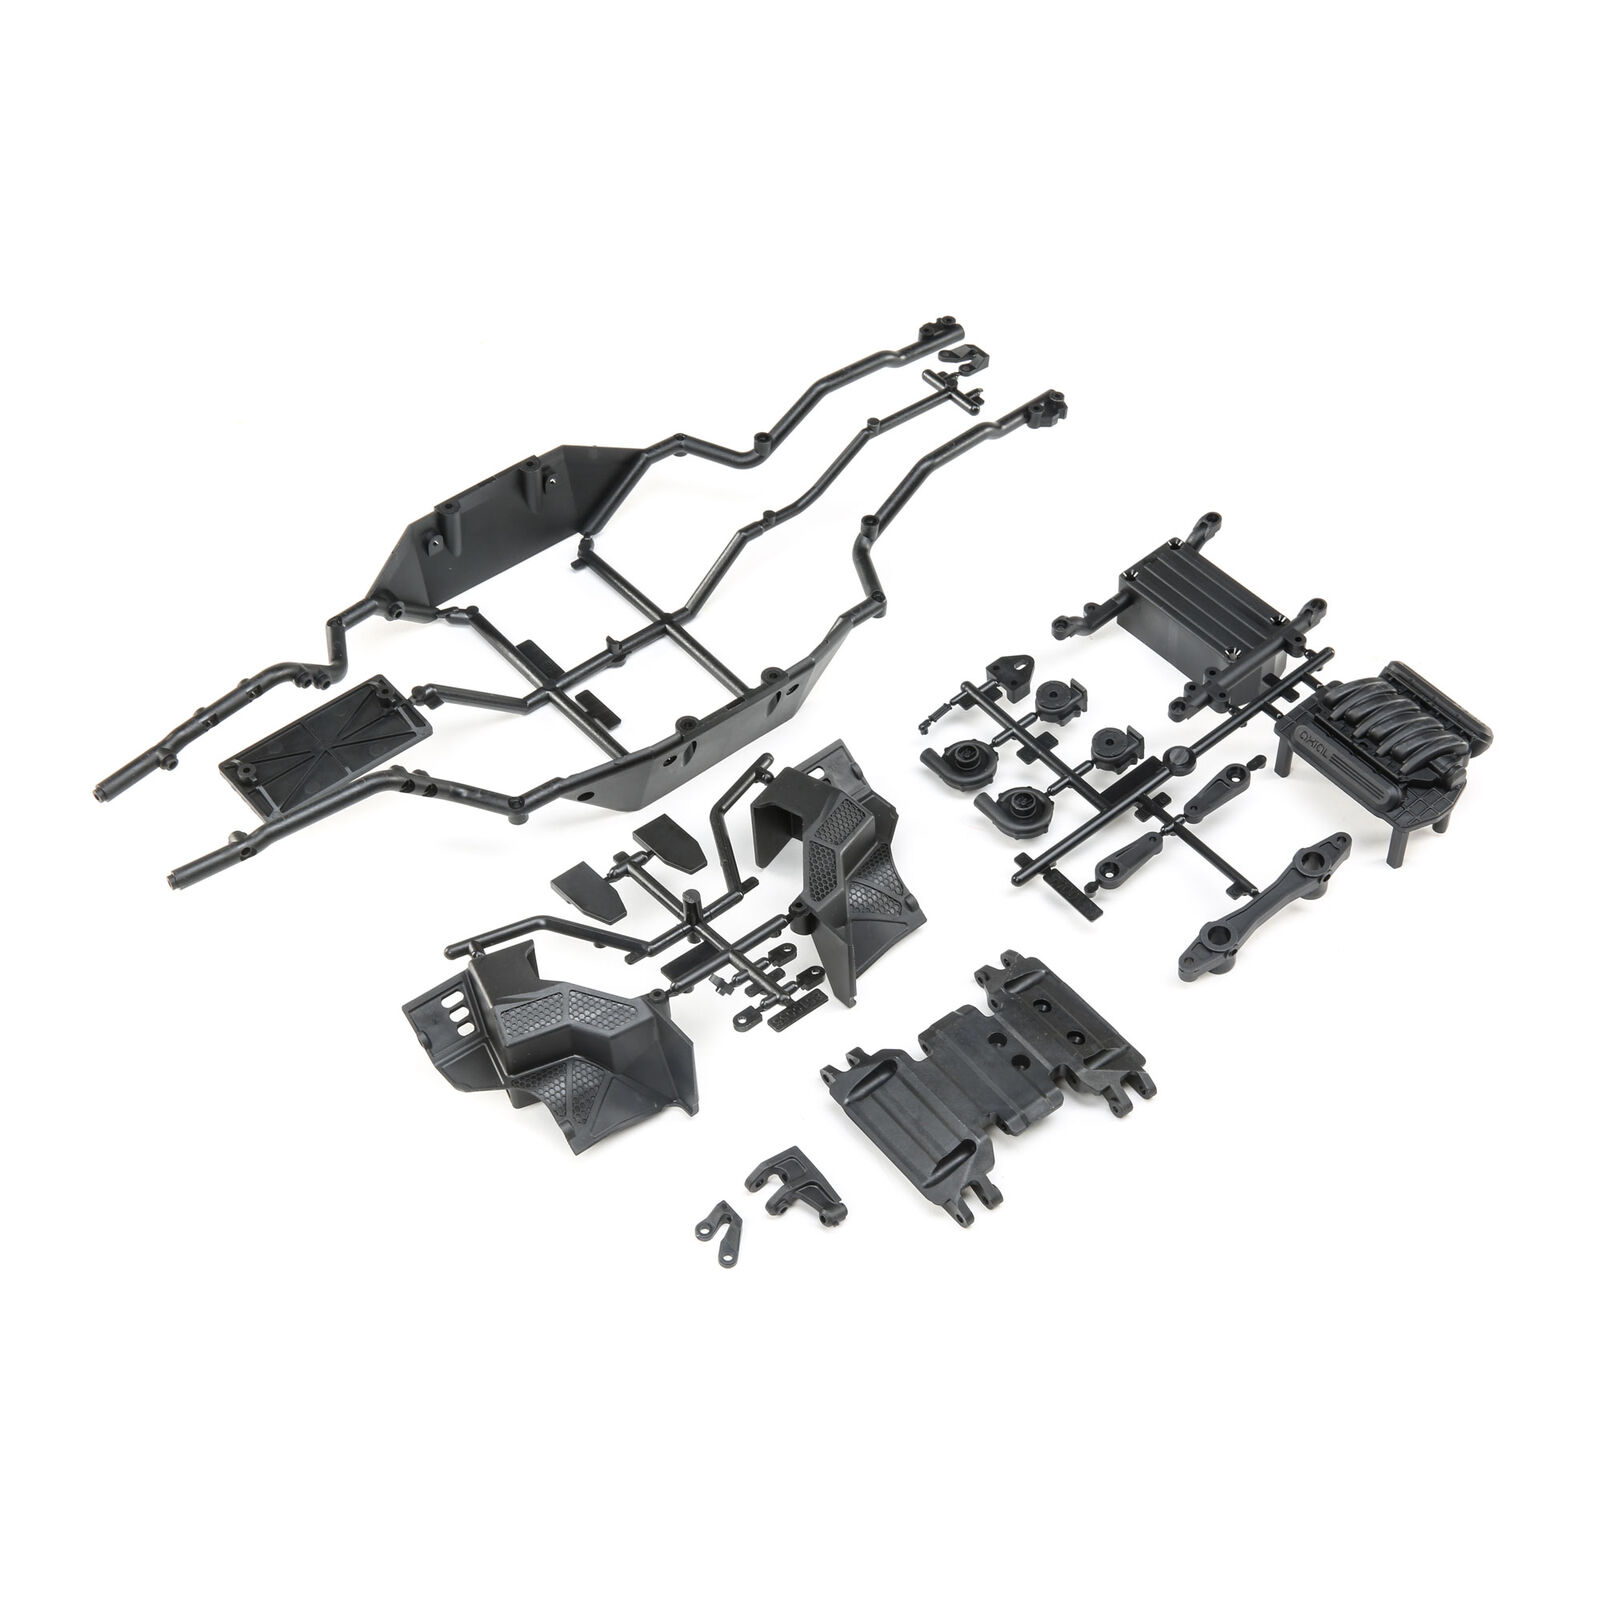 Lower Rail Skid Plate Battery Tray: Wraith 1.9